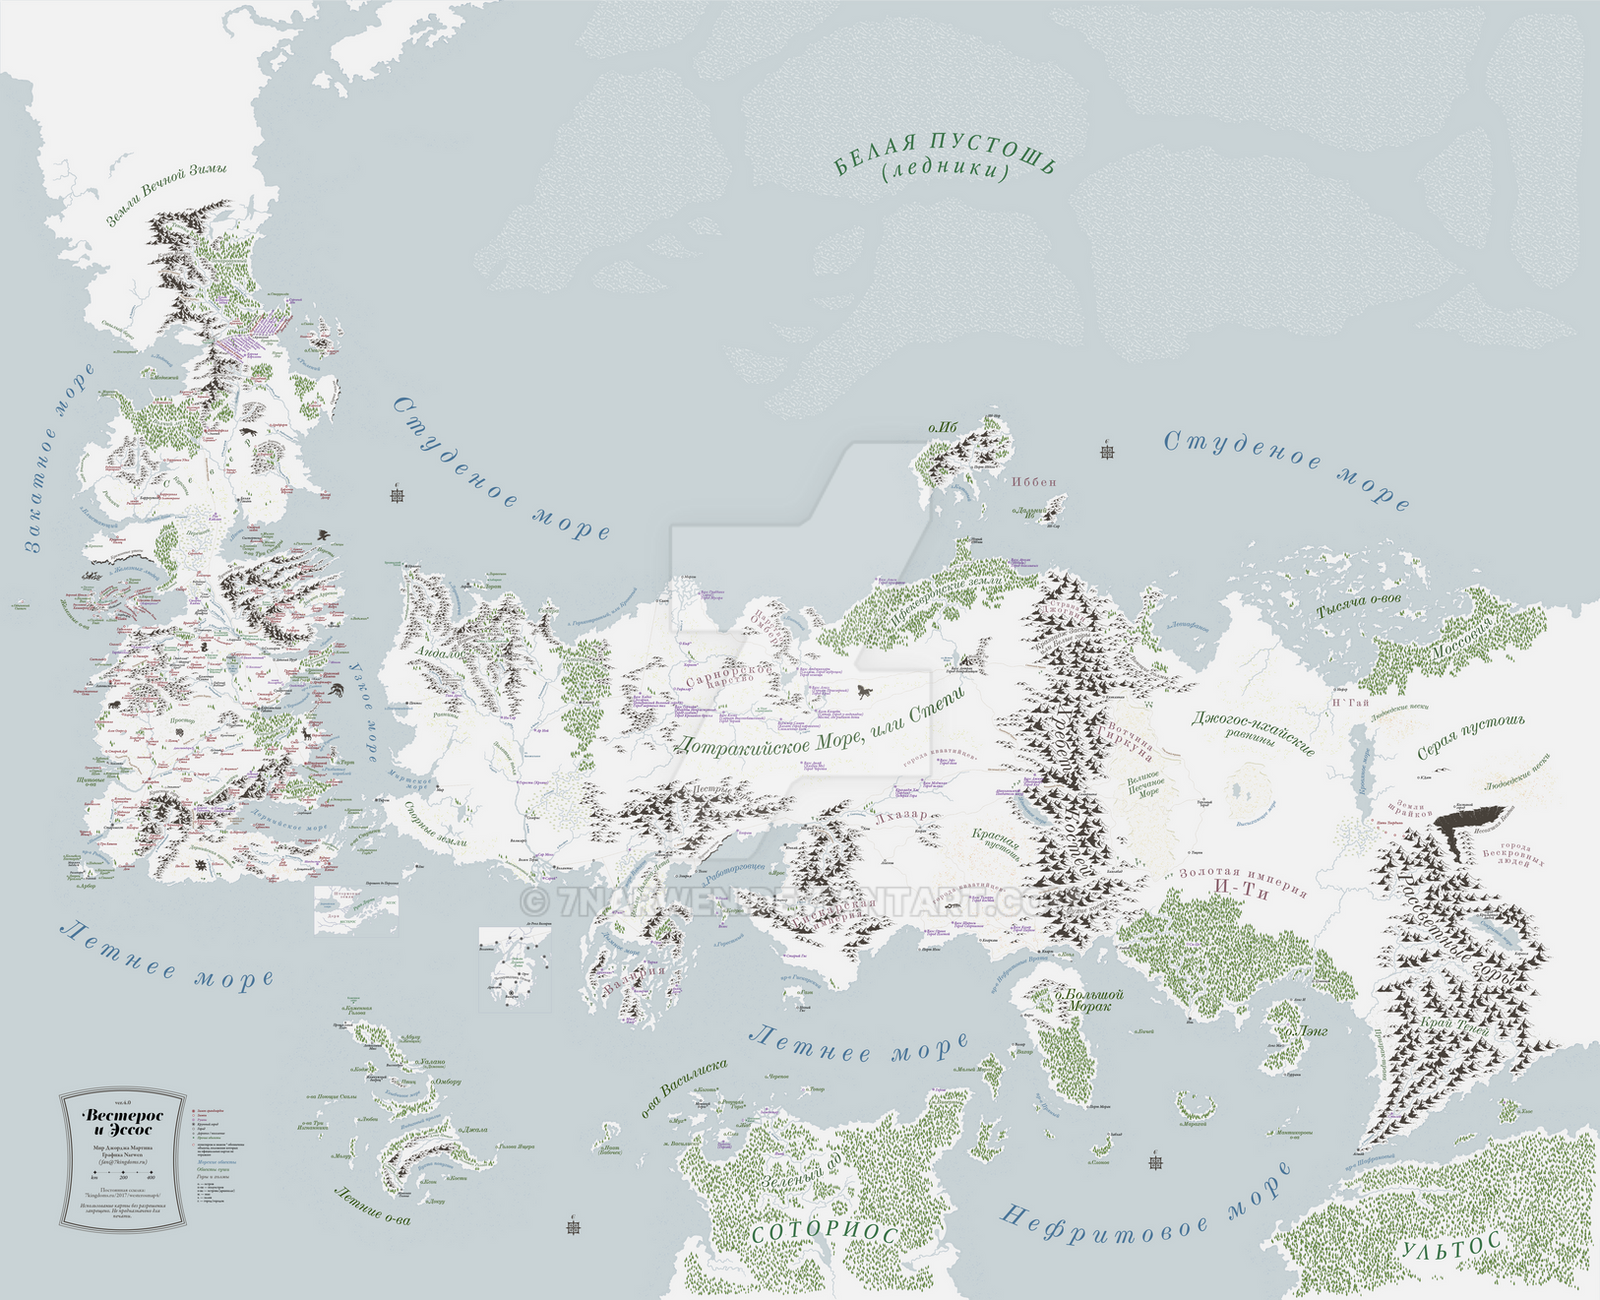 Westeros and Essos map, v.4 by 7Narwen on DeviantArt